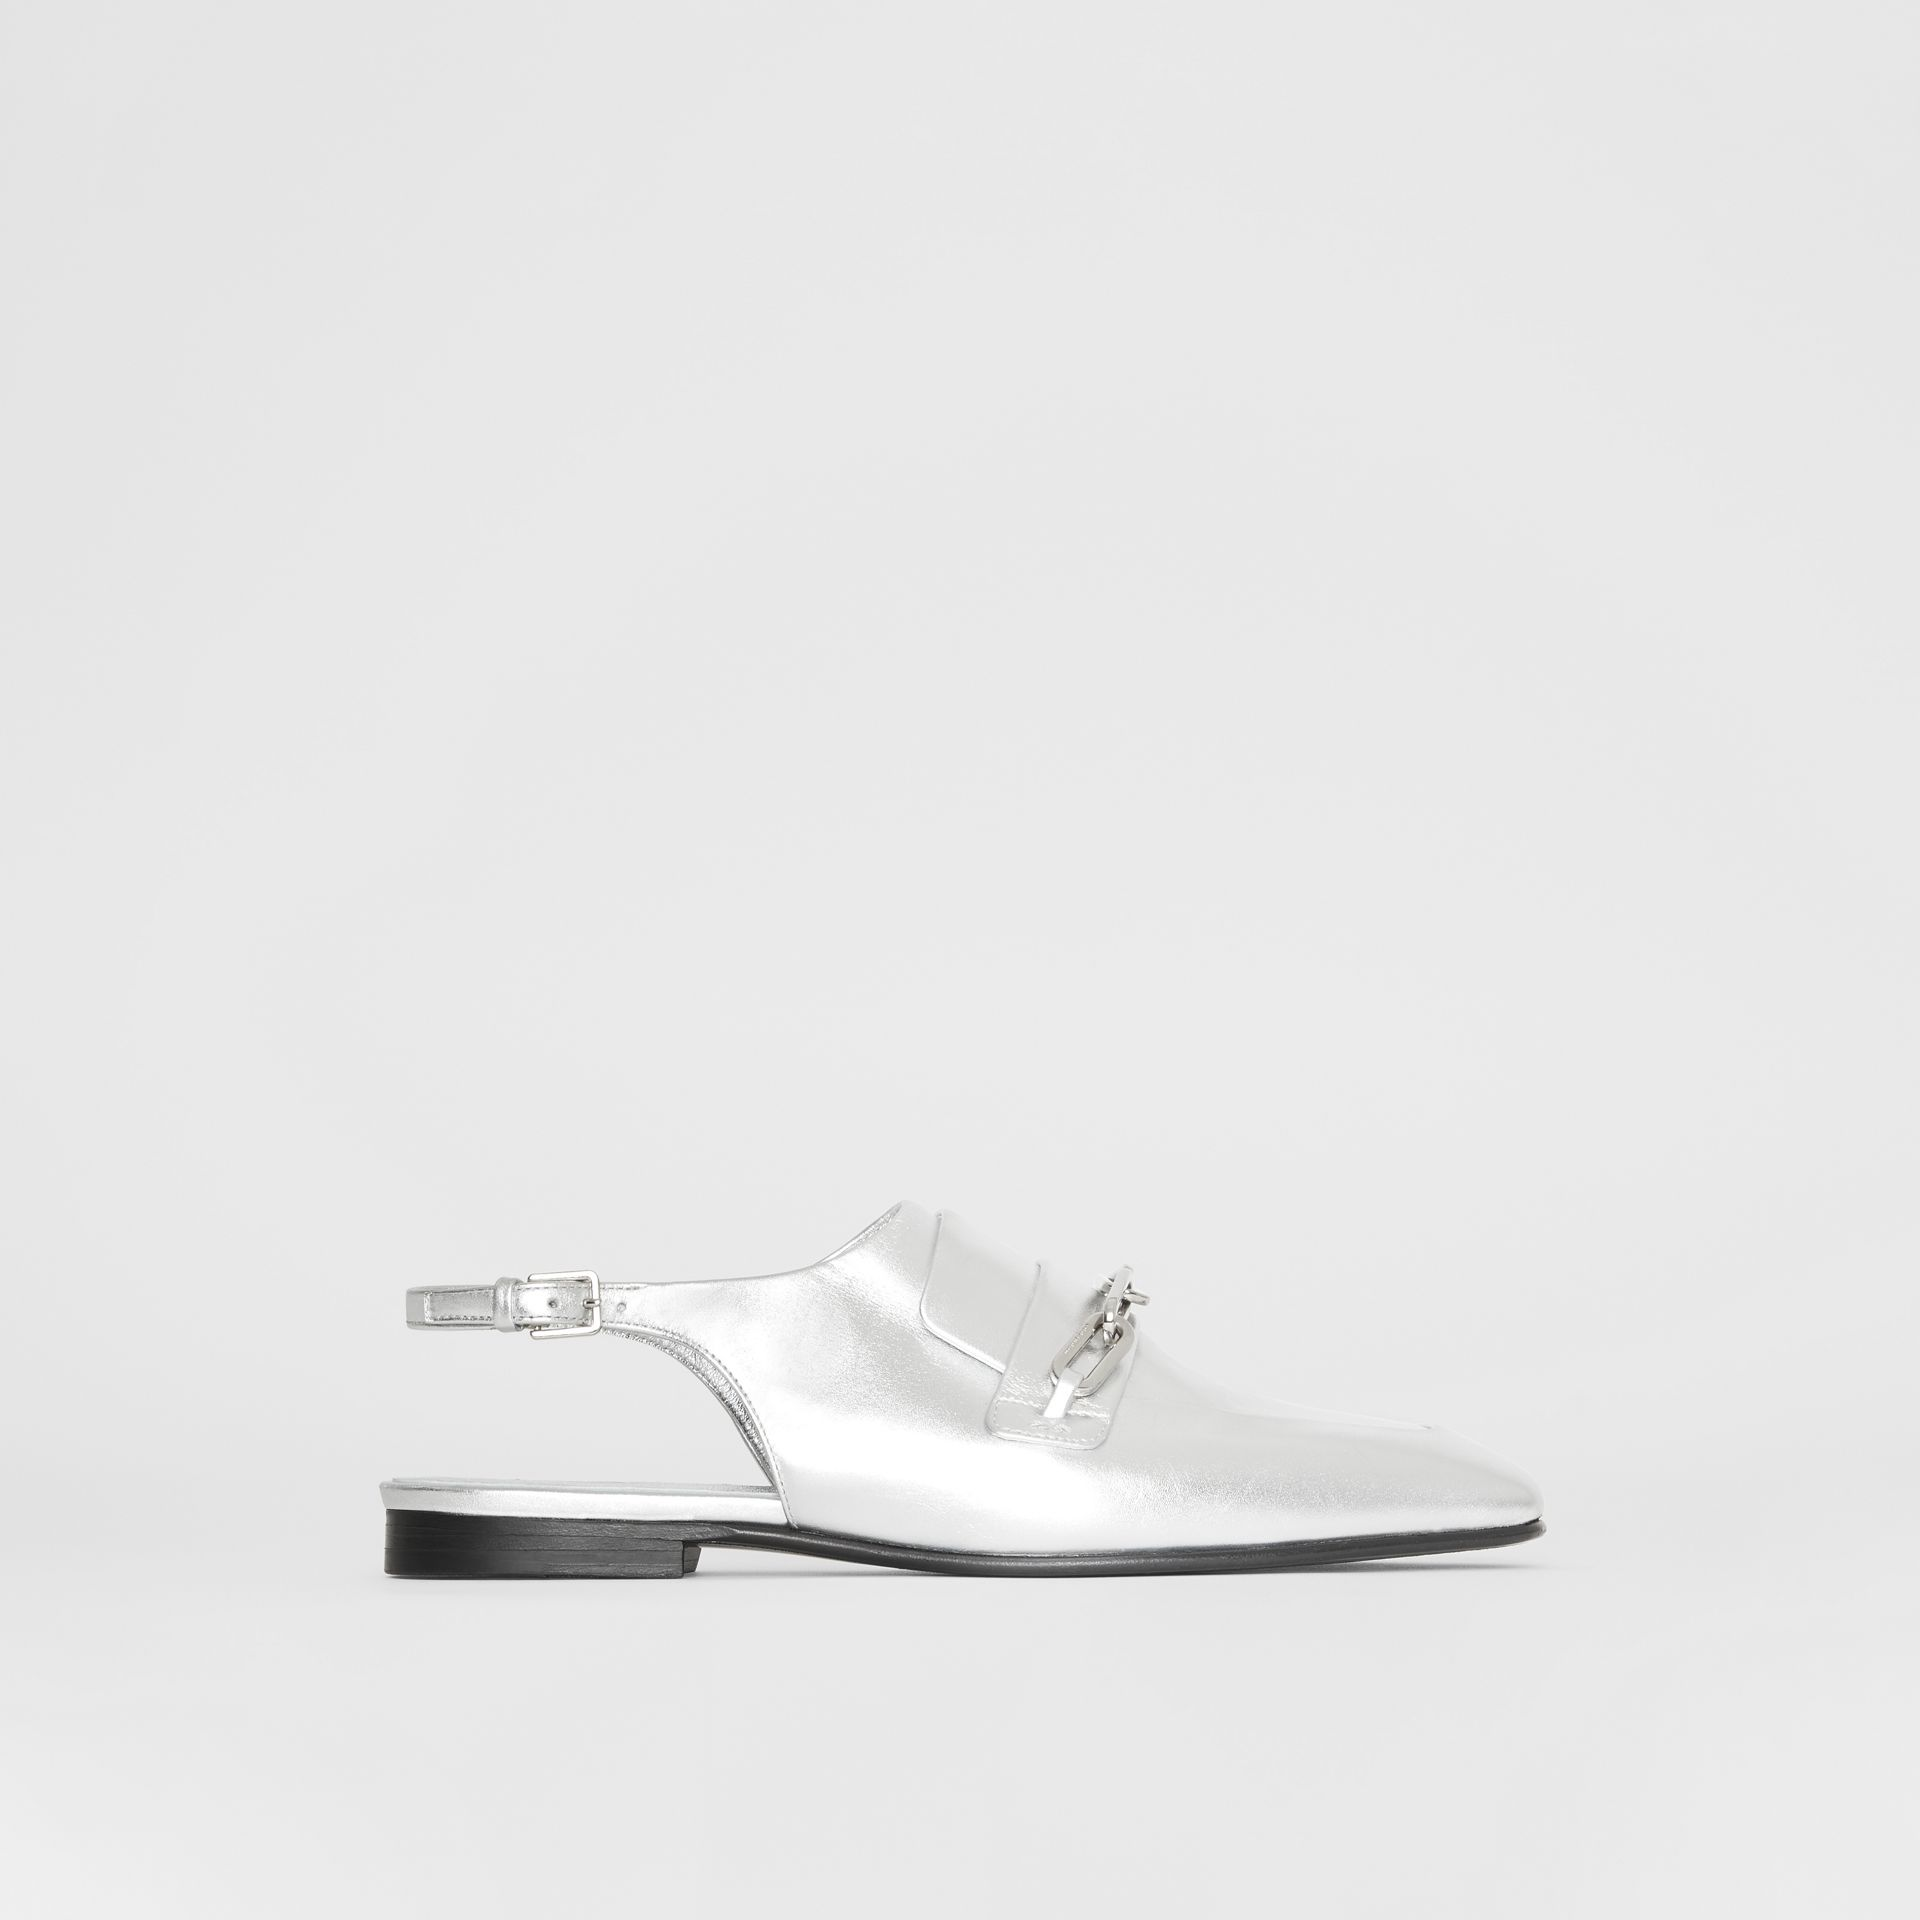 Link Detail Leather Slingback Loafers in Silver Grey - Women | Burberry - gallery image 5